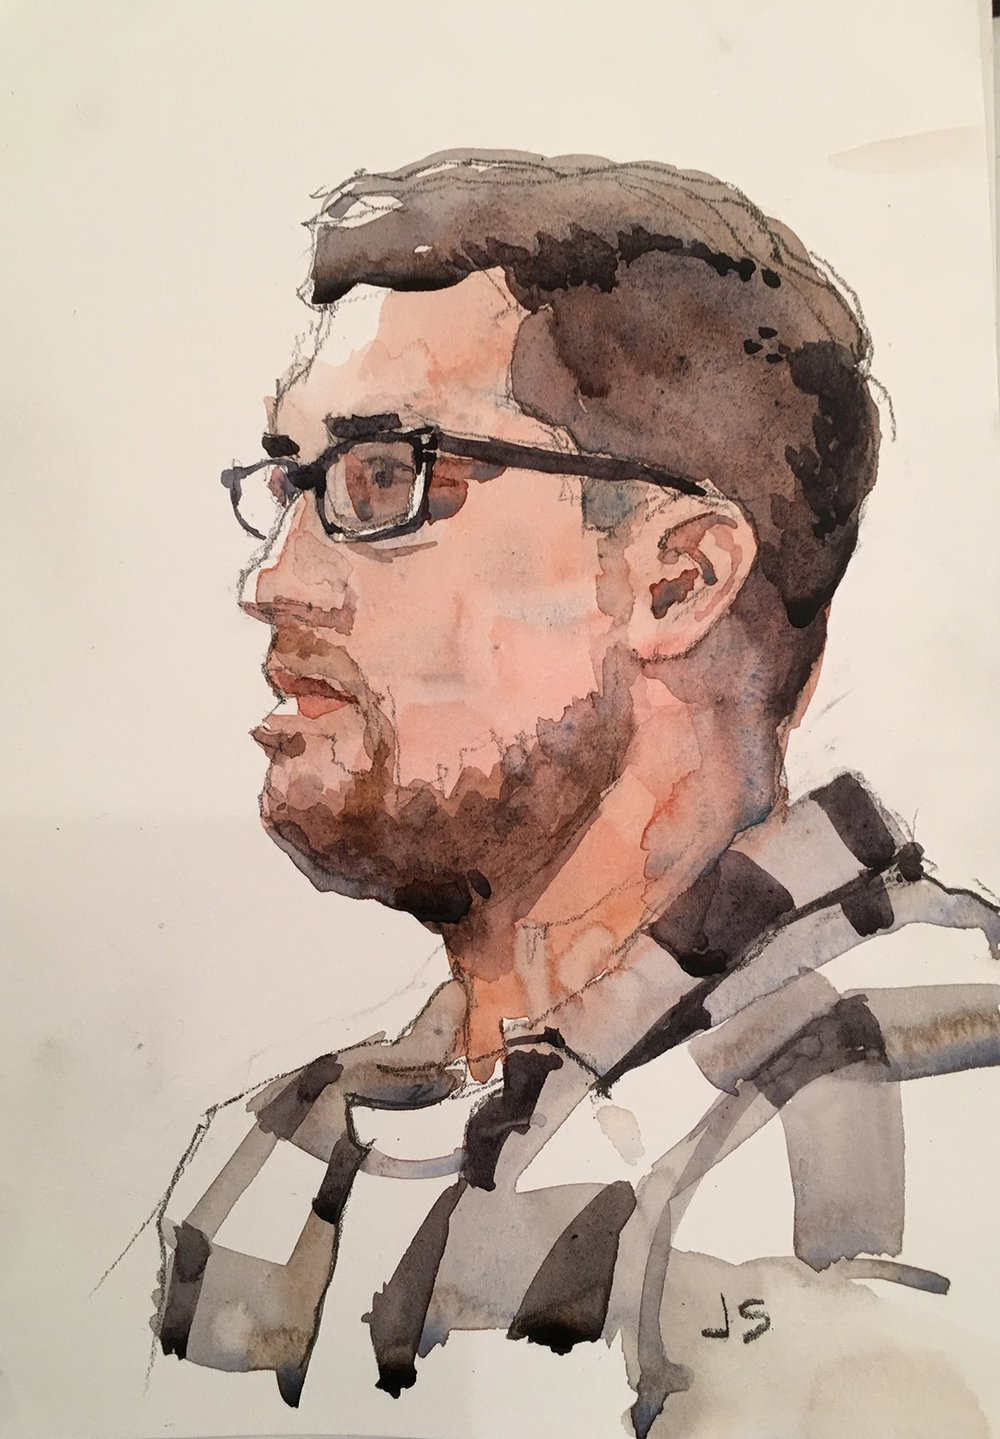 Jeff Suntala did this hour and a half watercolor.